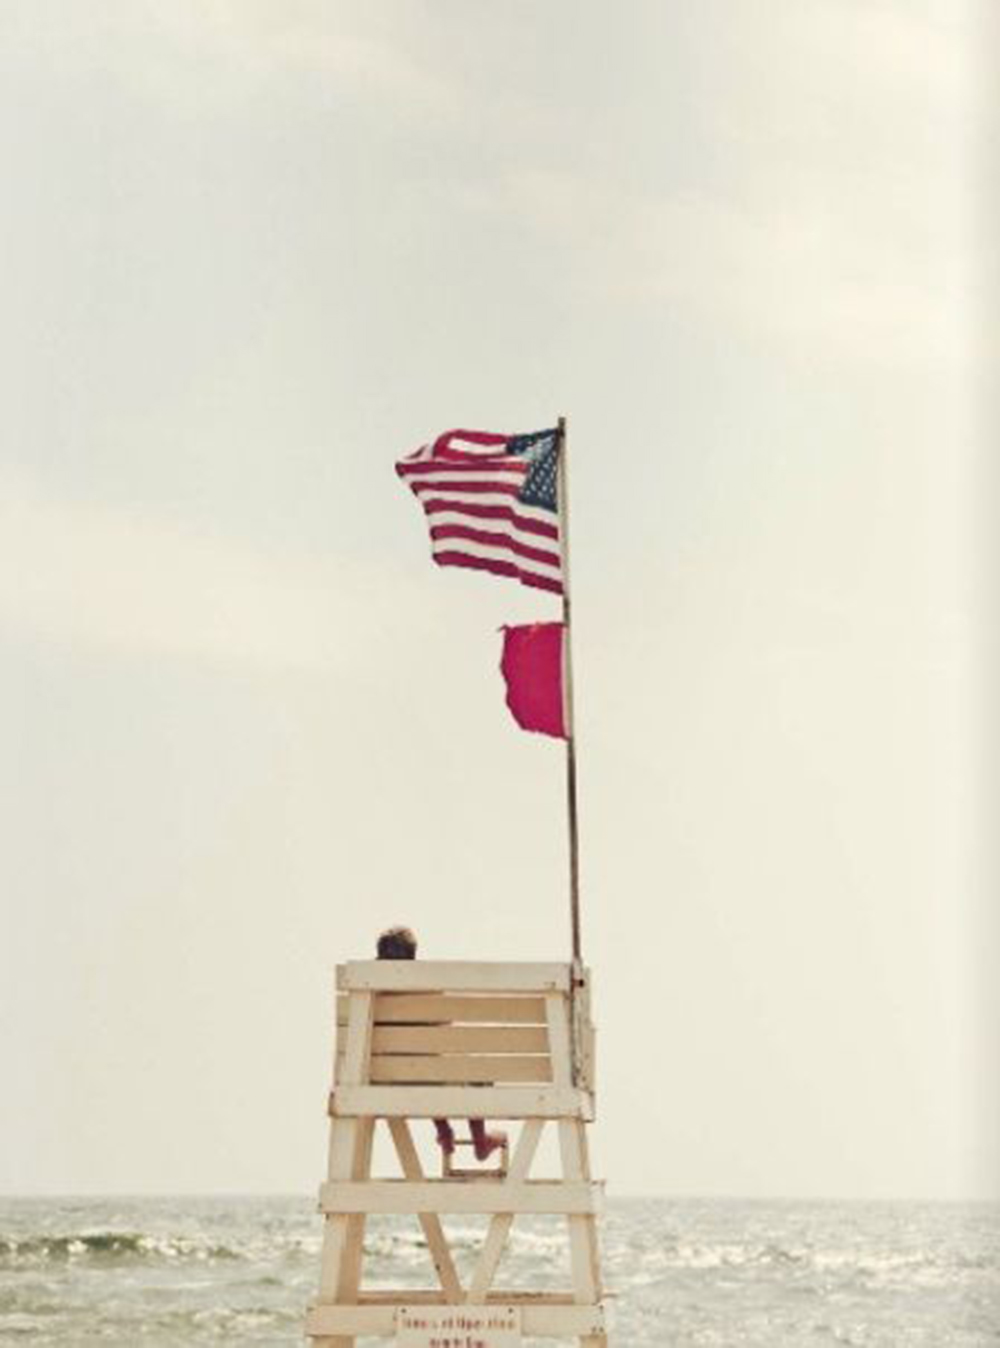 Best 4th of July Sales popular interior design blog, E. Interiors: image of white lifeguard tower with an American flag at the beach.